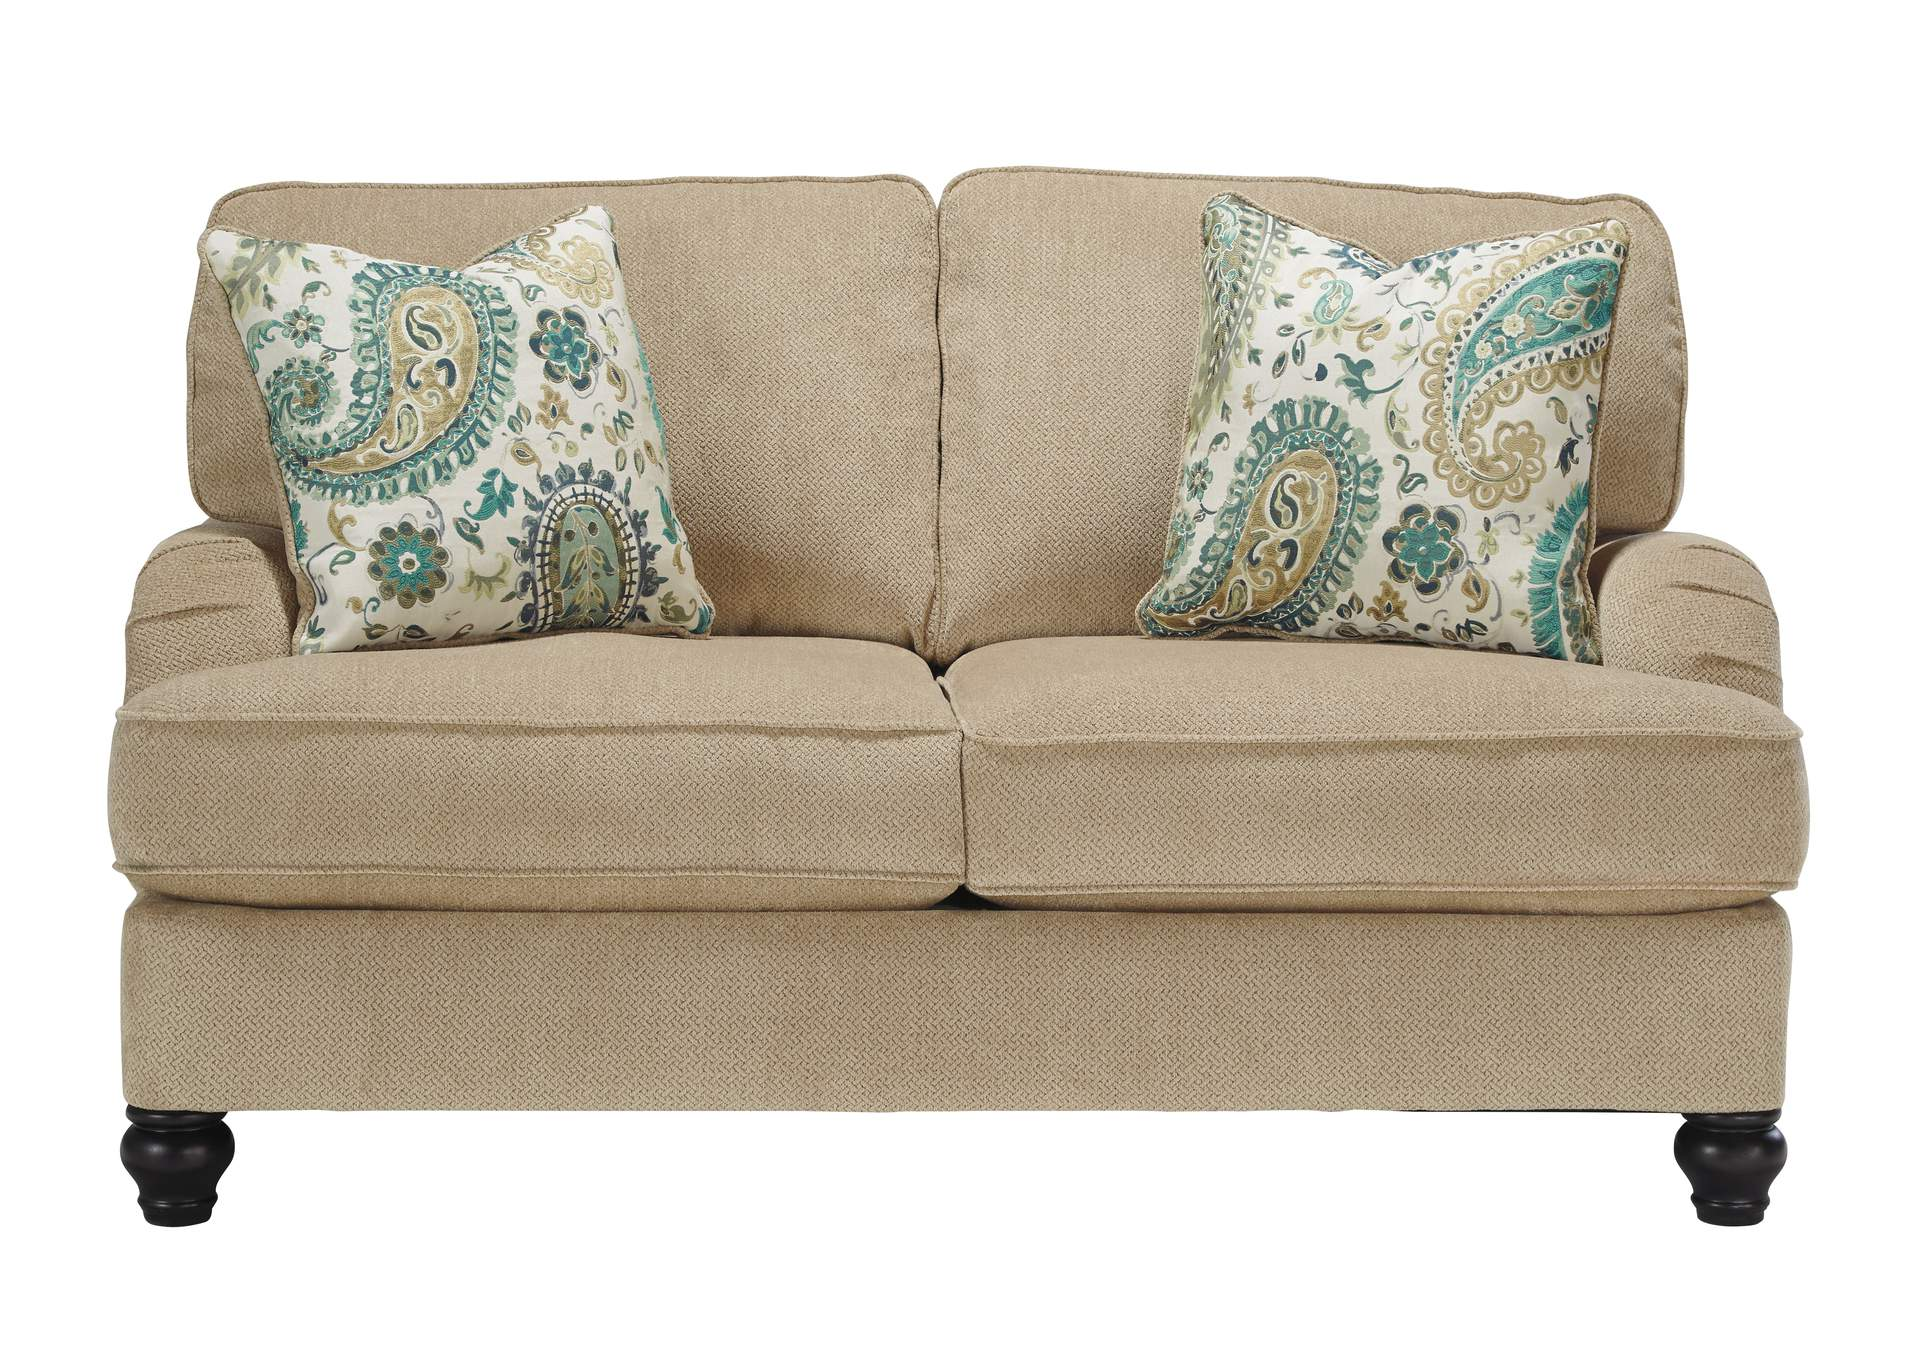 W.A Akins u0026 Sons Lochian Bisque Loveseat